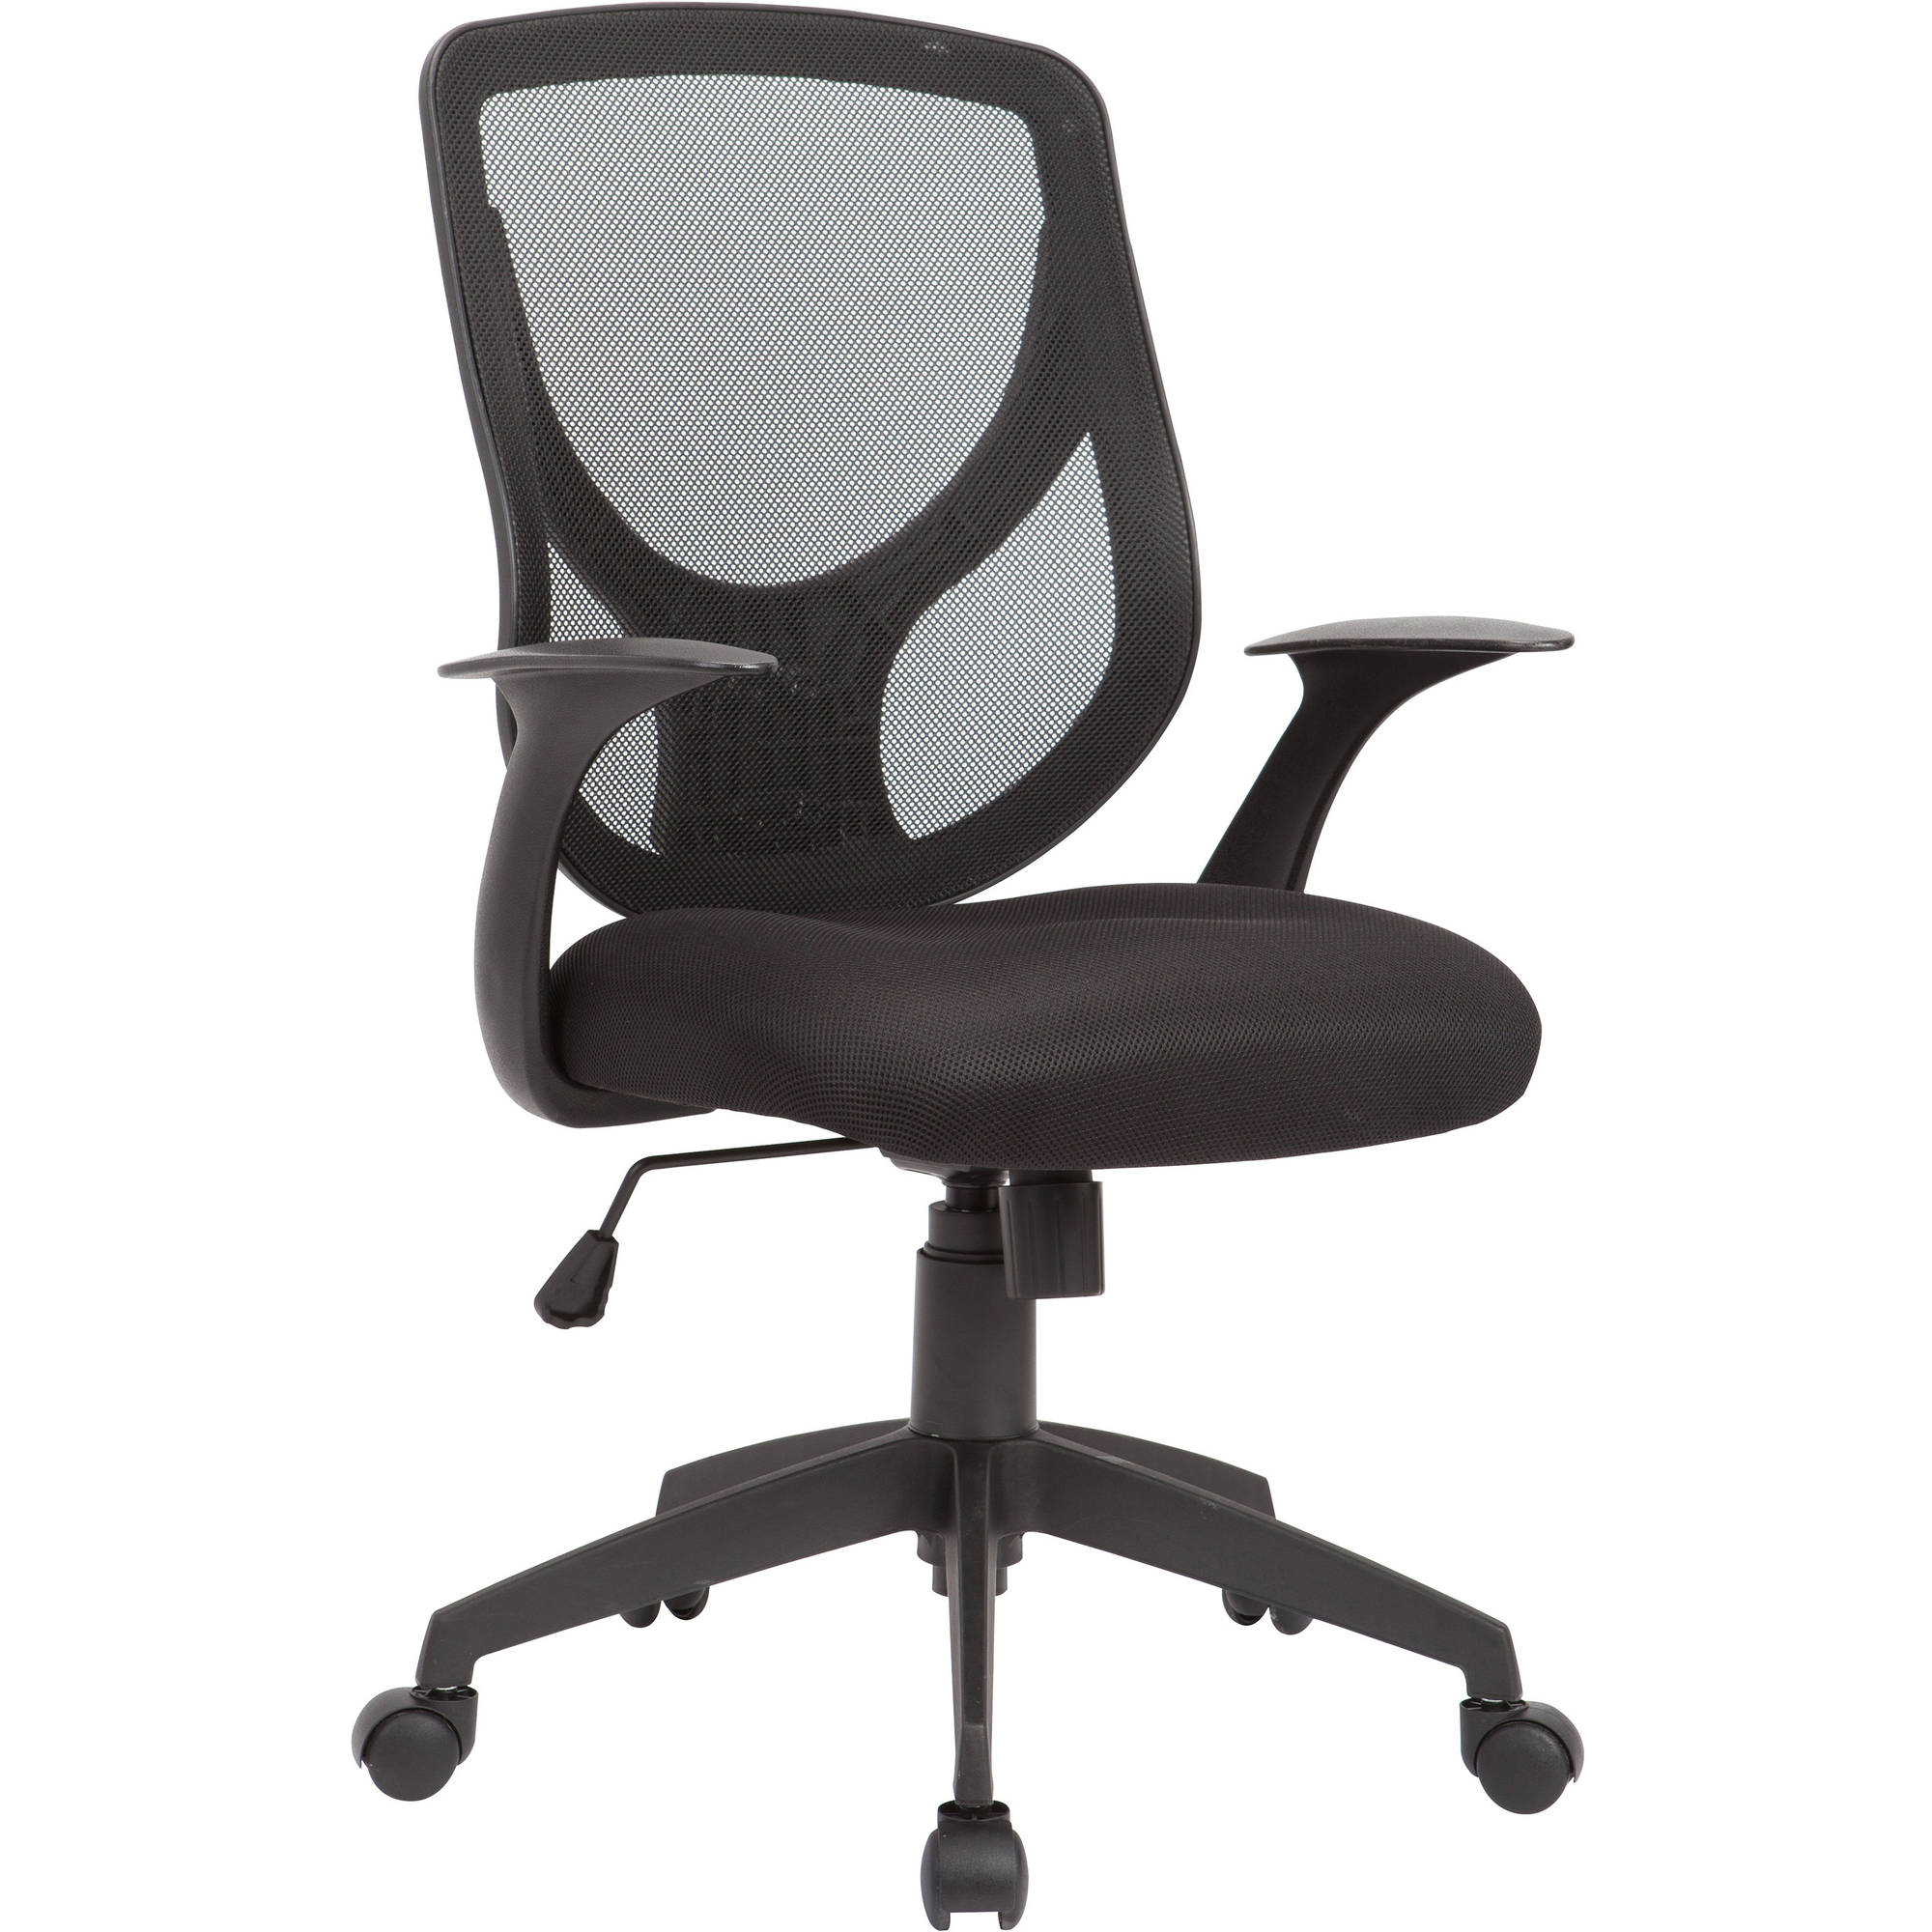 AC Pacific Adjustable Swivel Office Chair Mesh Seat And Back, Black